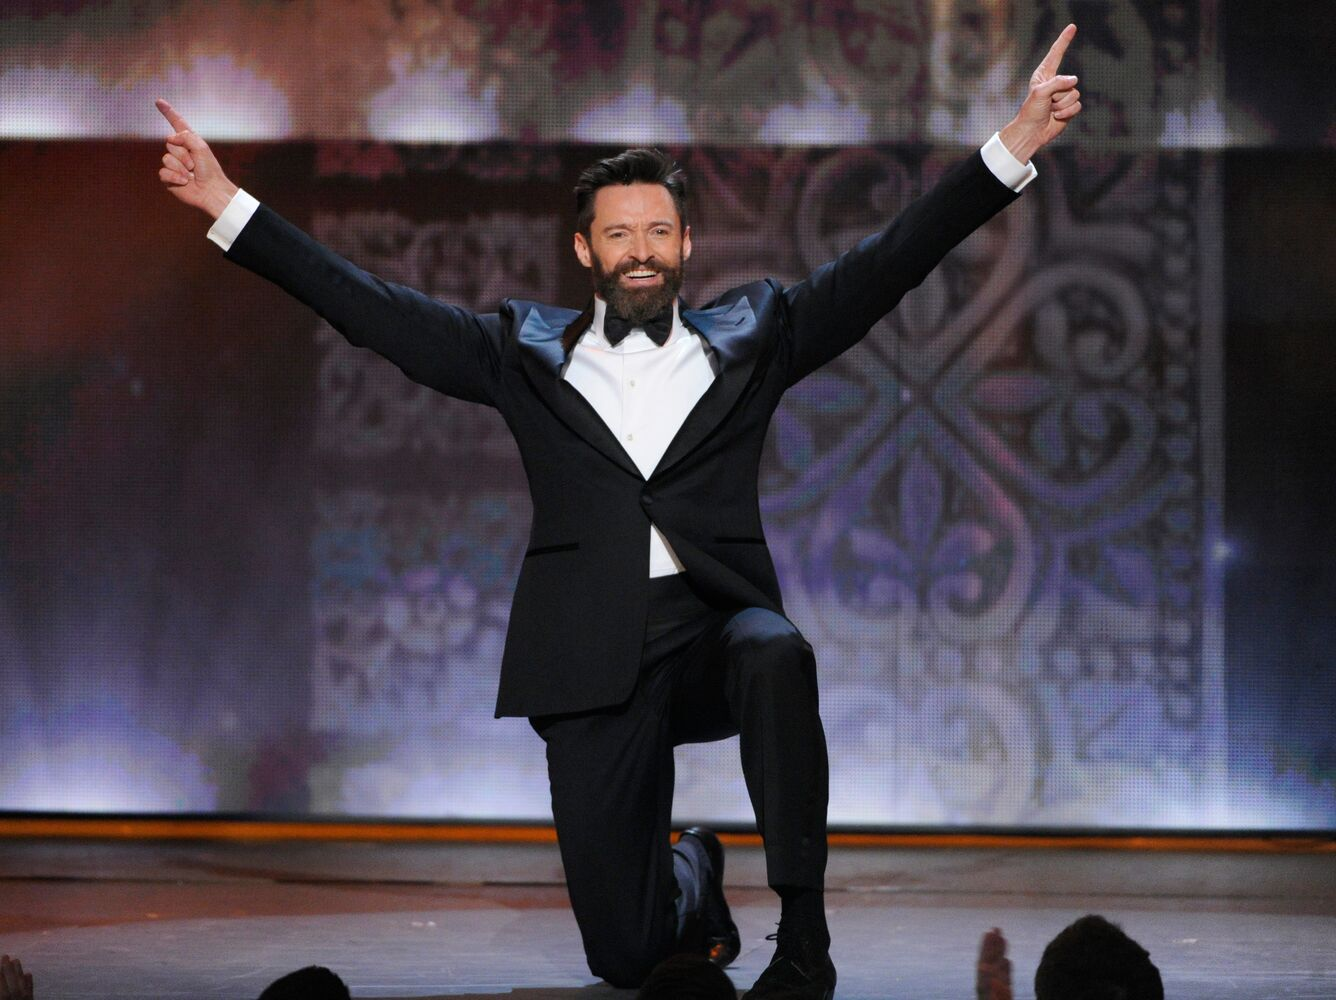 Host Hugh Jackman performs onstage at the 68th annual Tony Awards at Radio City Music Hall on Sunday, June 8, 2014, in New York. (Evan Agostini / The Associated Press)